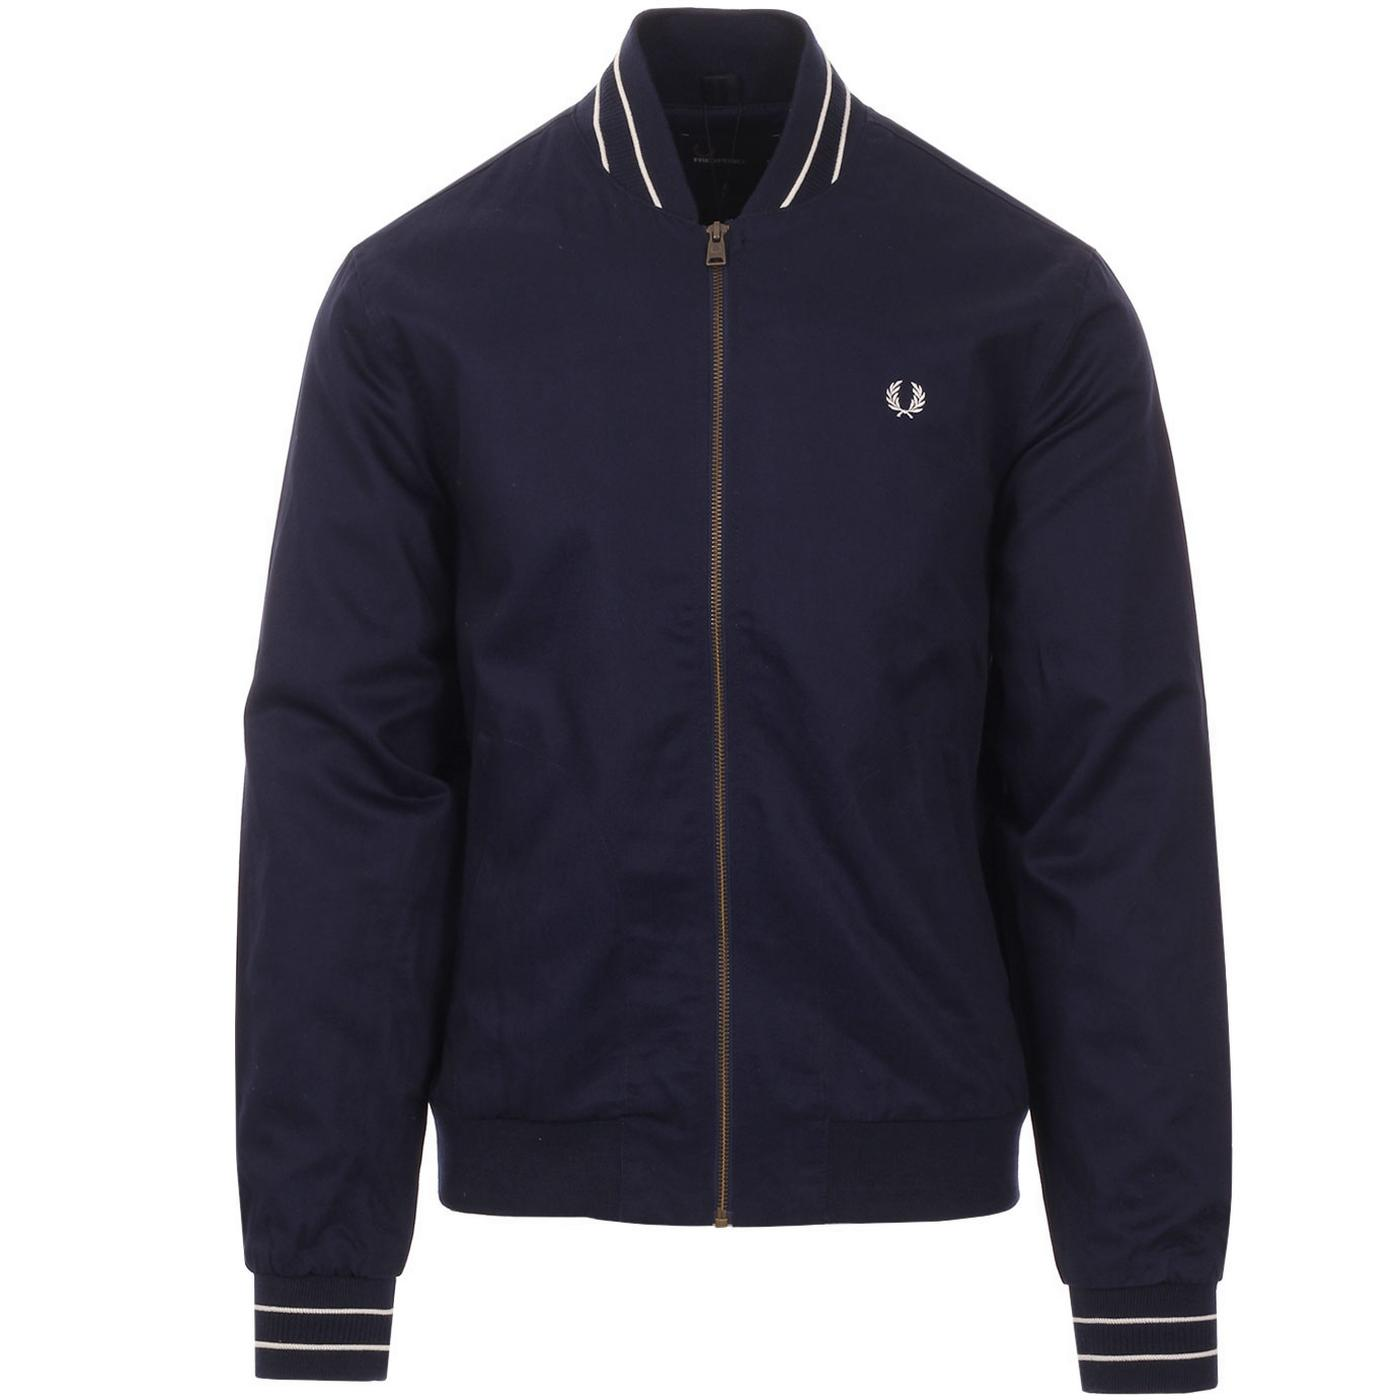 FRED PERRY Men's Retro Tipped Bomber Jacket CB